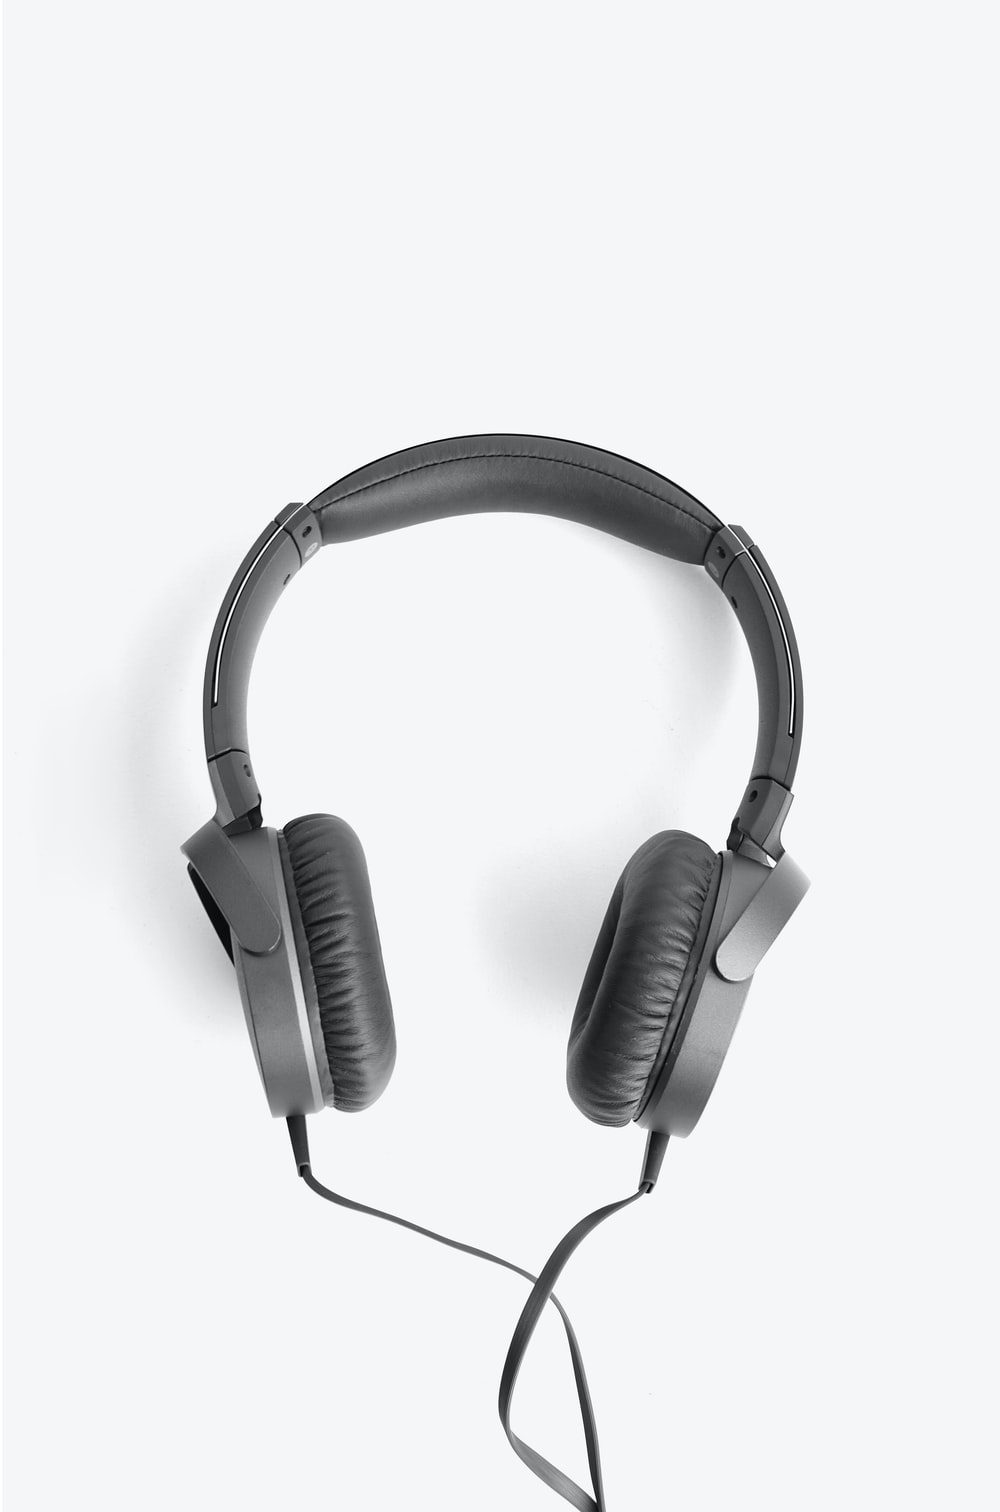 black and silver headphones on white surface